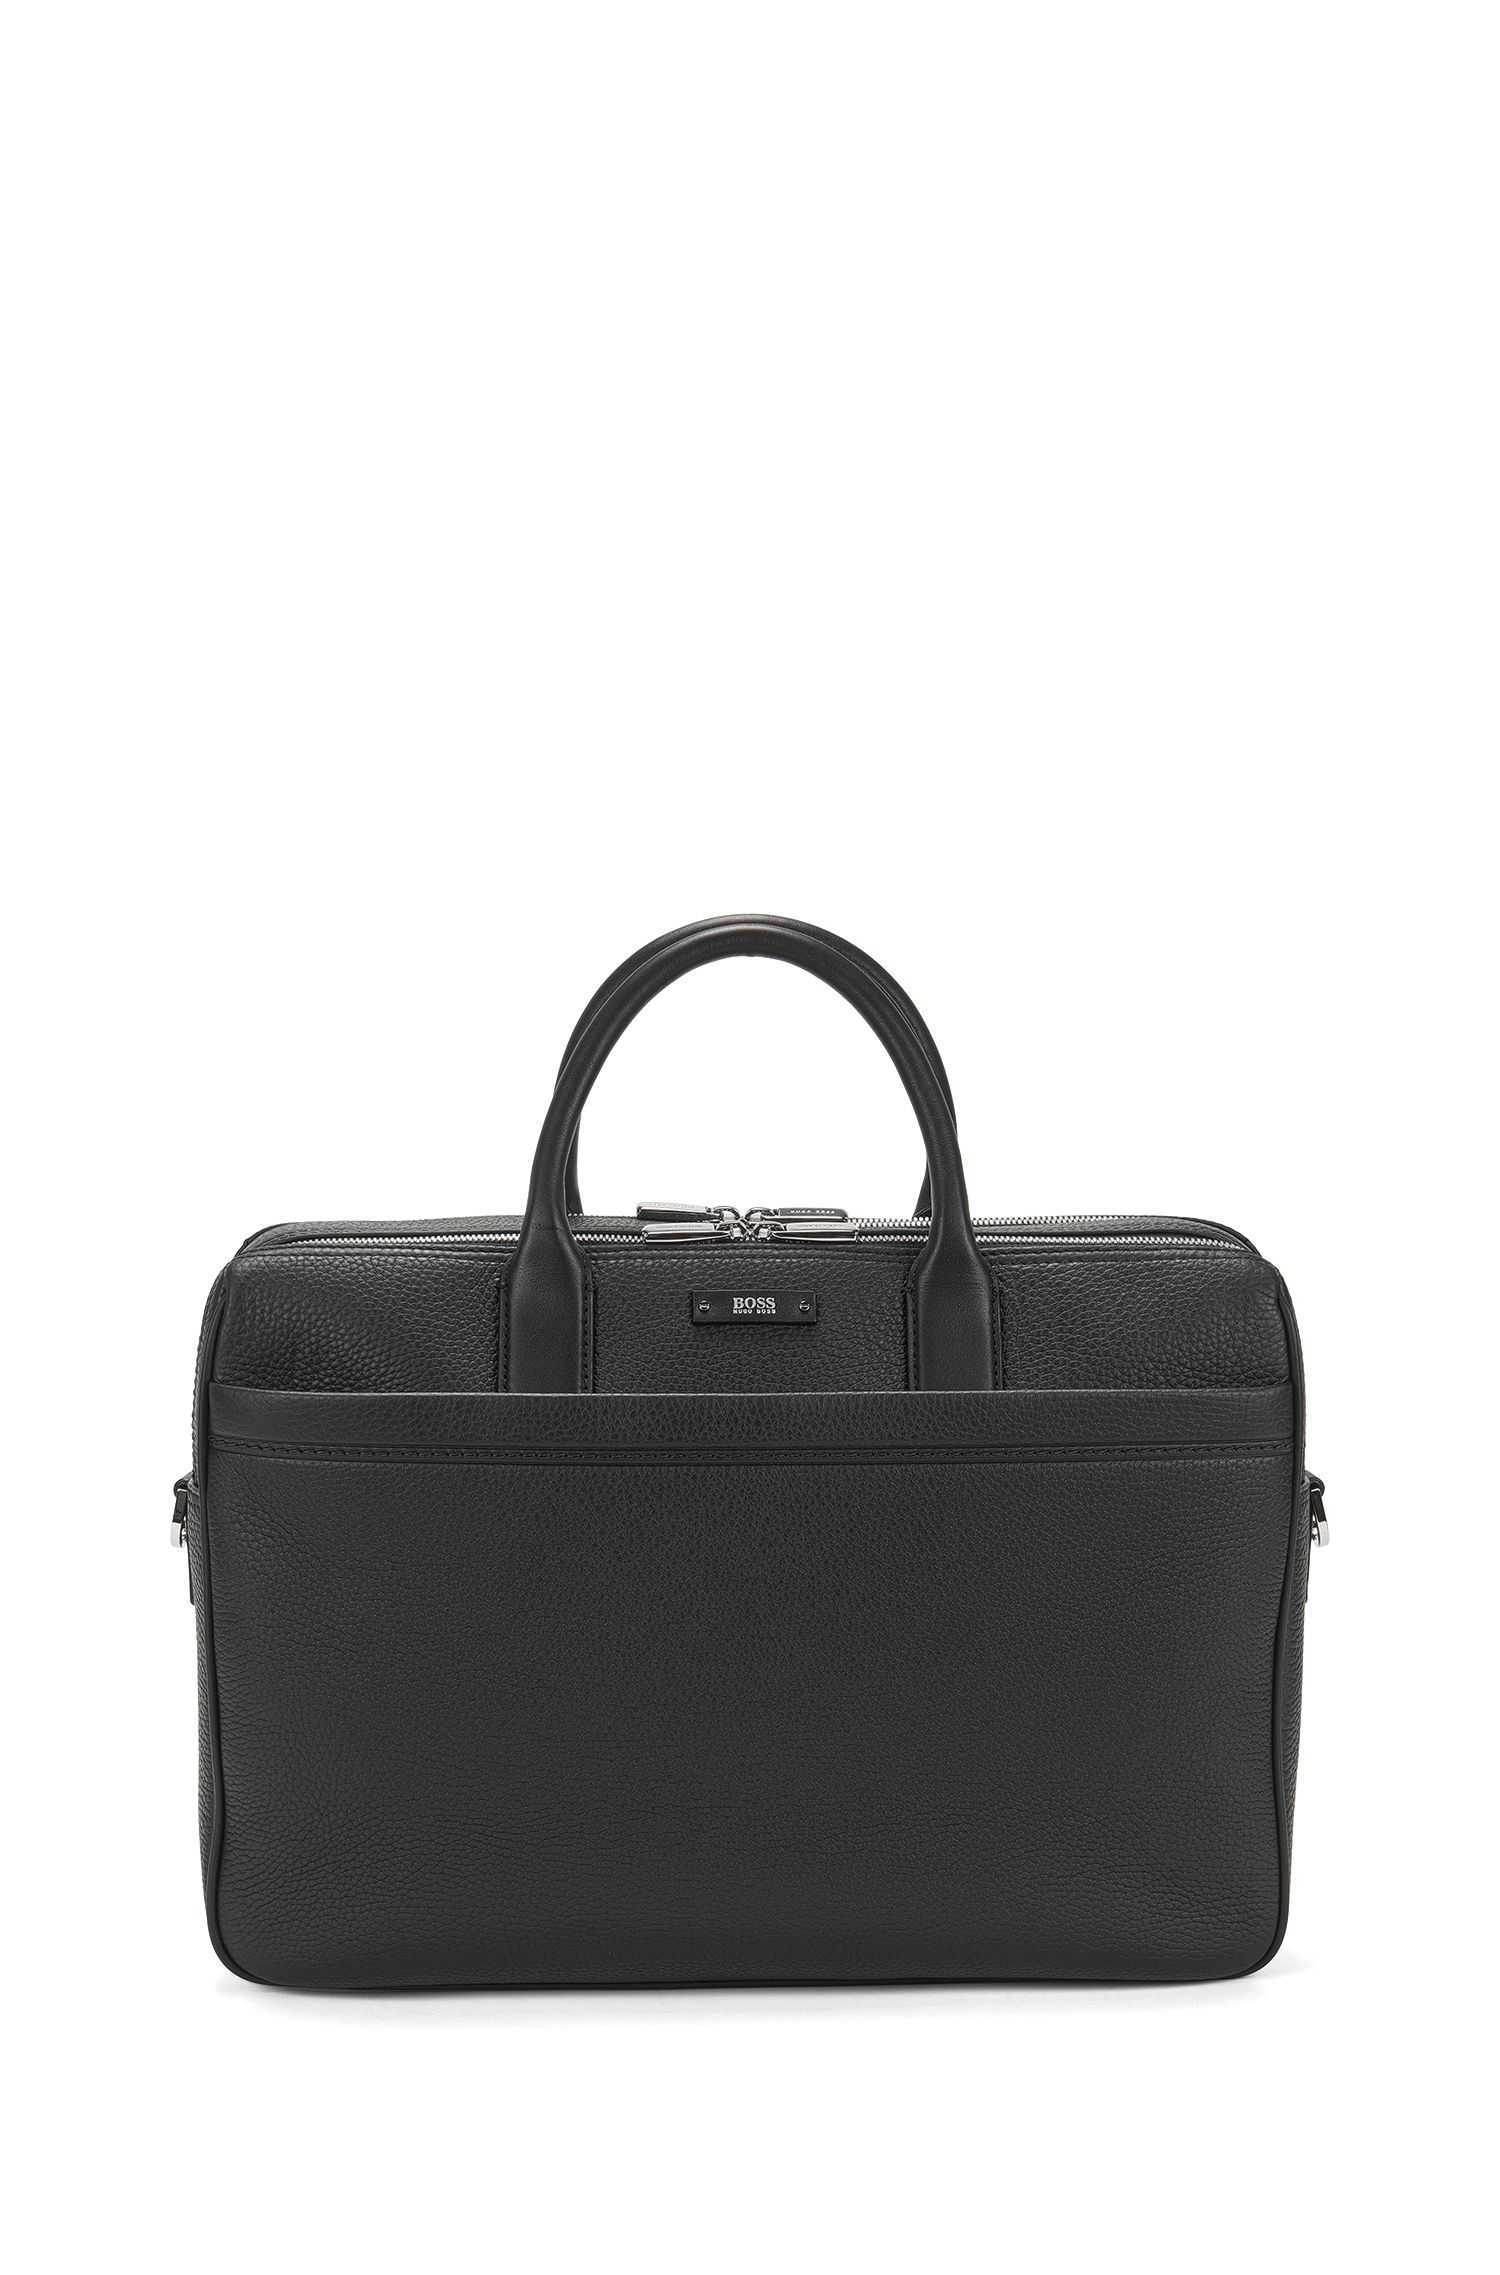 Leather Work Bag | Traveller D Doc